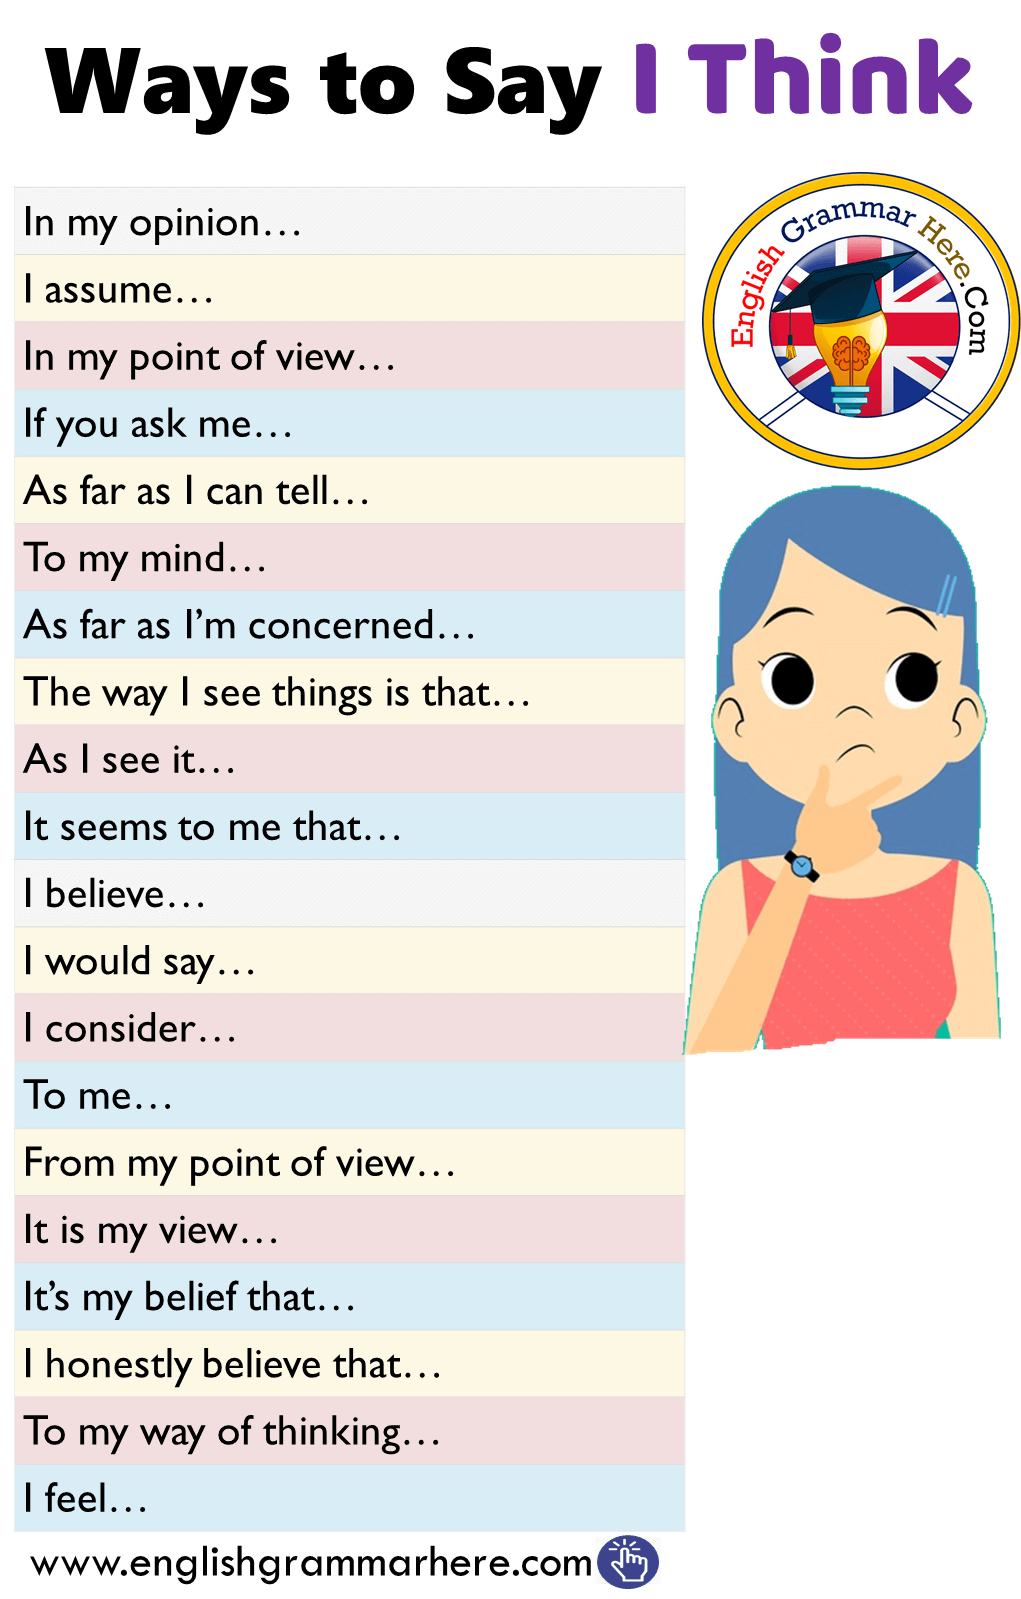 English Ways to Say I Think